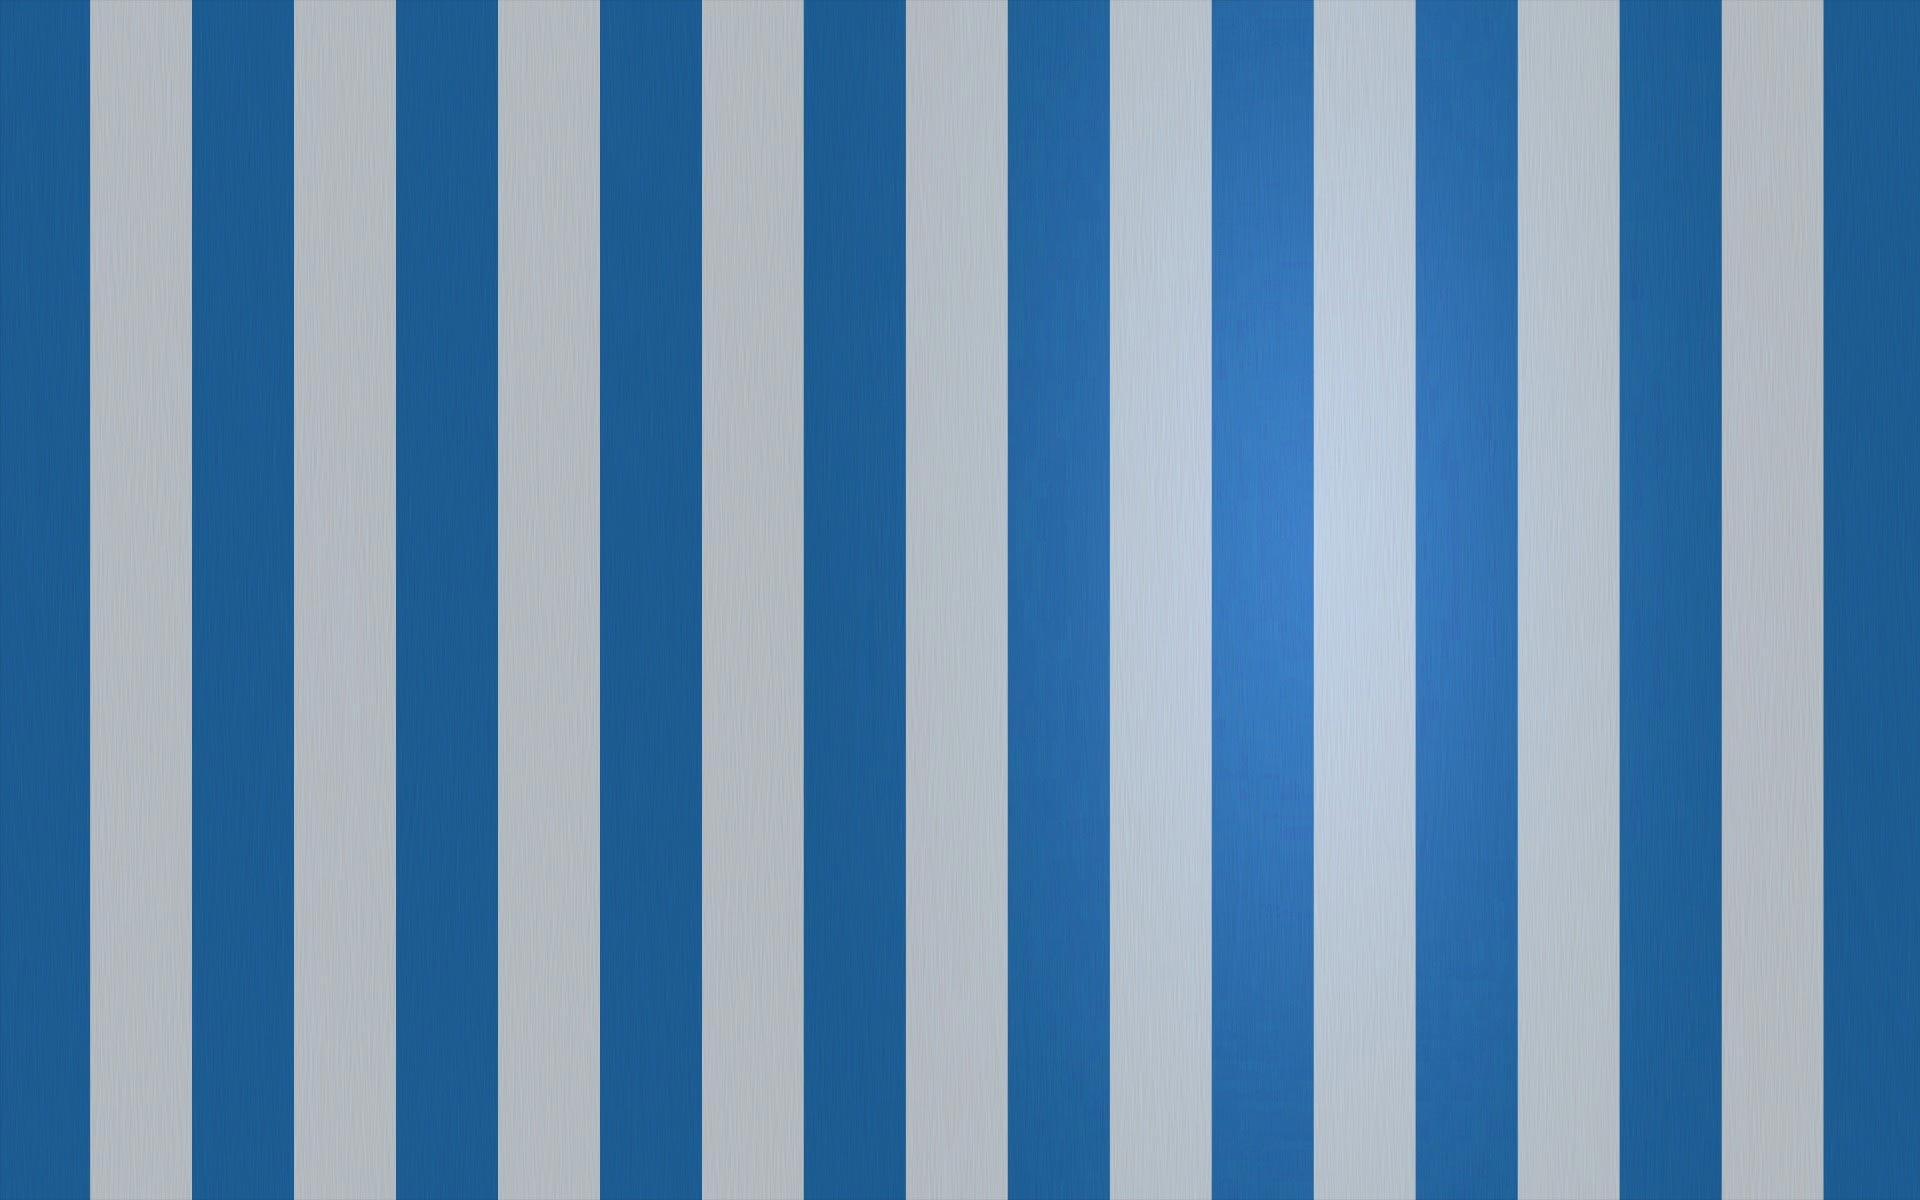 Blue Stripes Wallpaper 46464